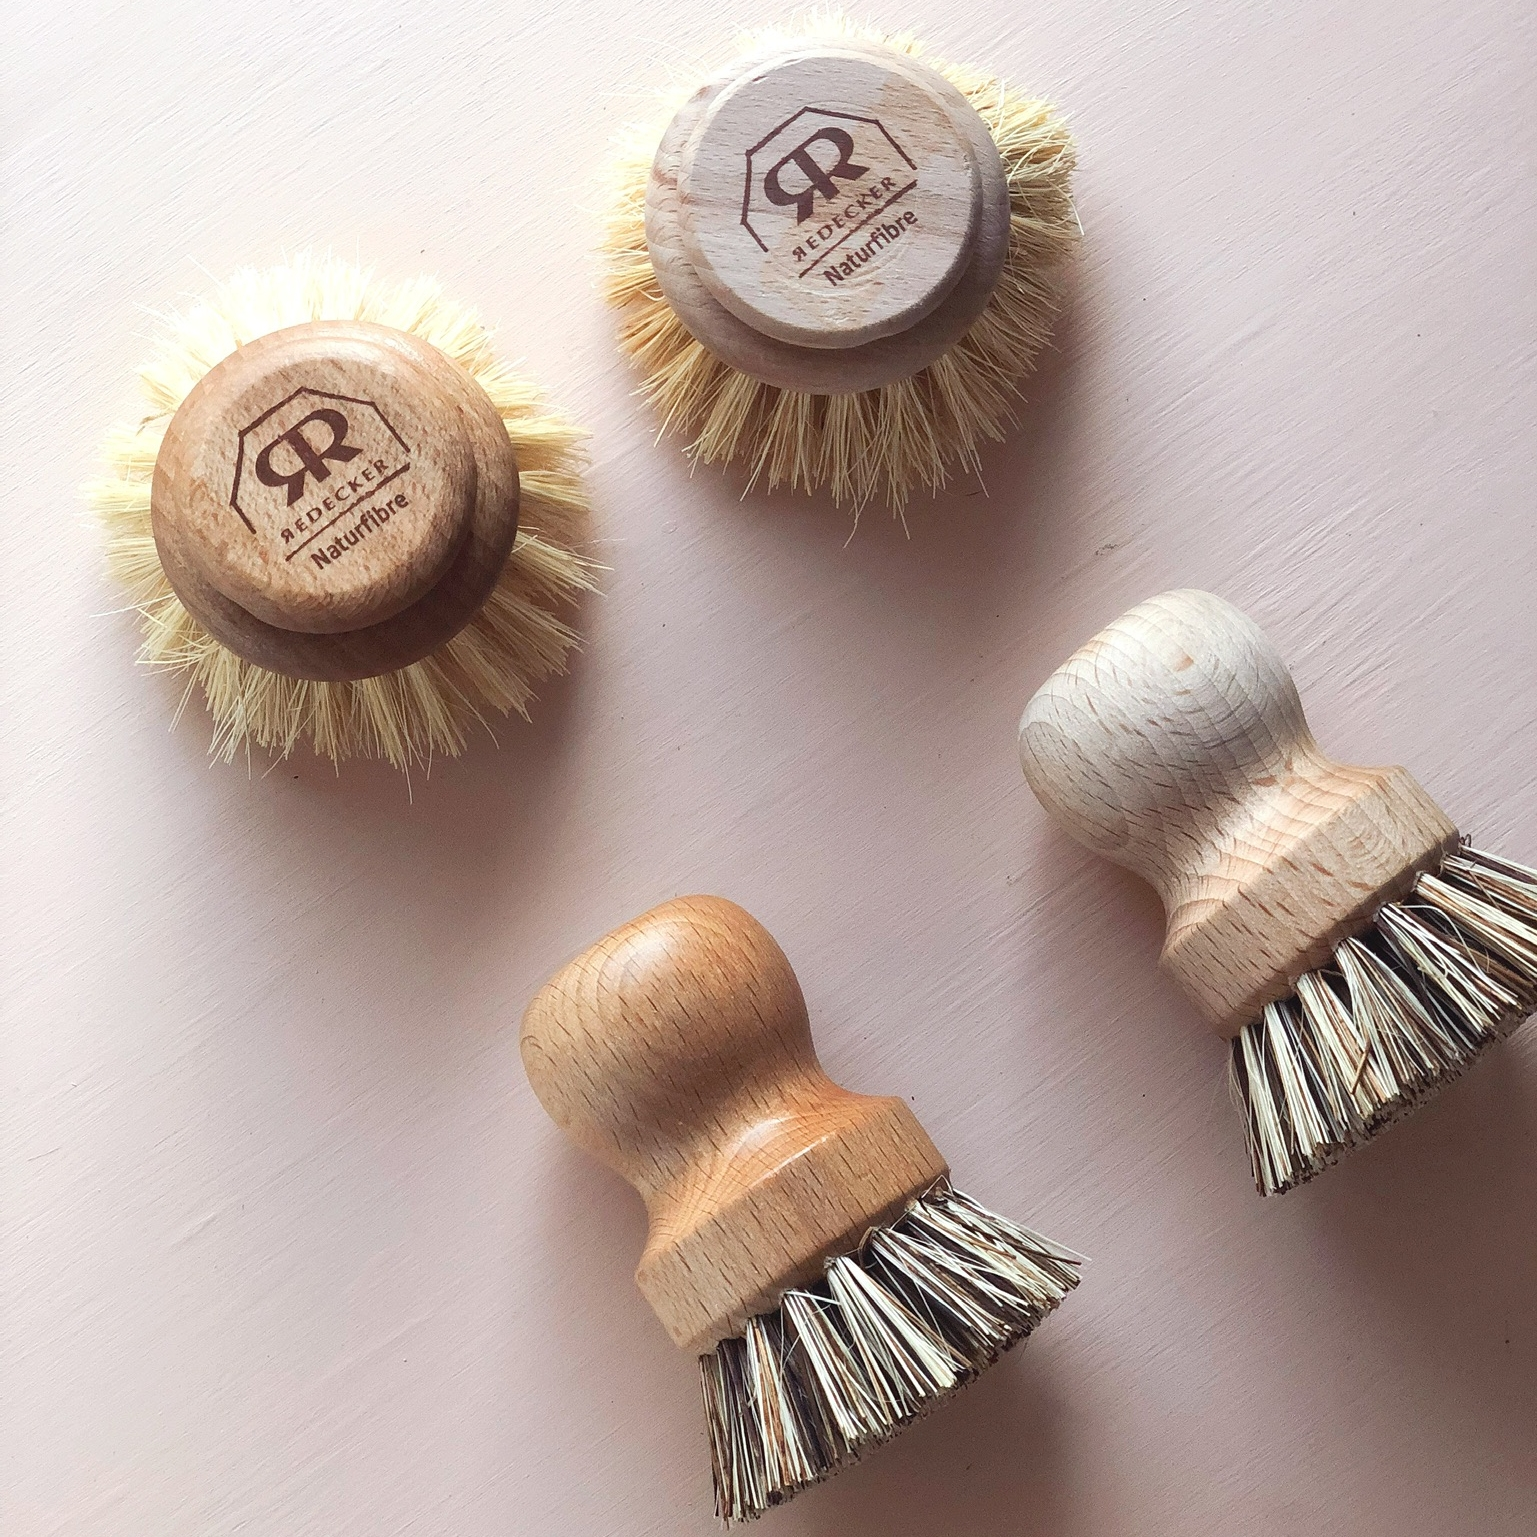 The brushes on the left have a layer of spoon butter, the brushes on the right are bare.